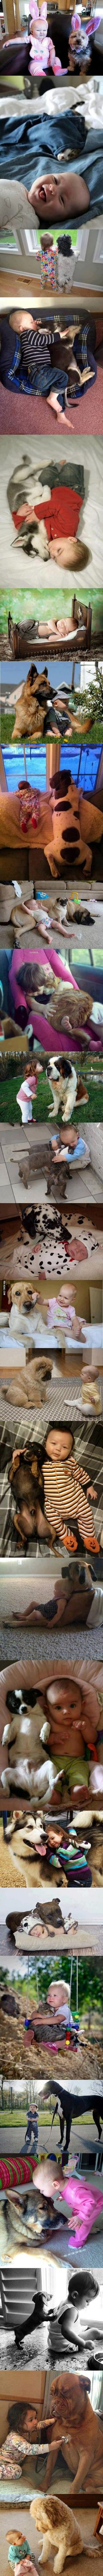 Why kids need pets. So cute